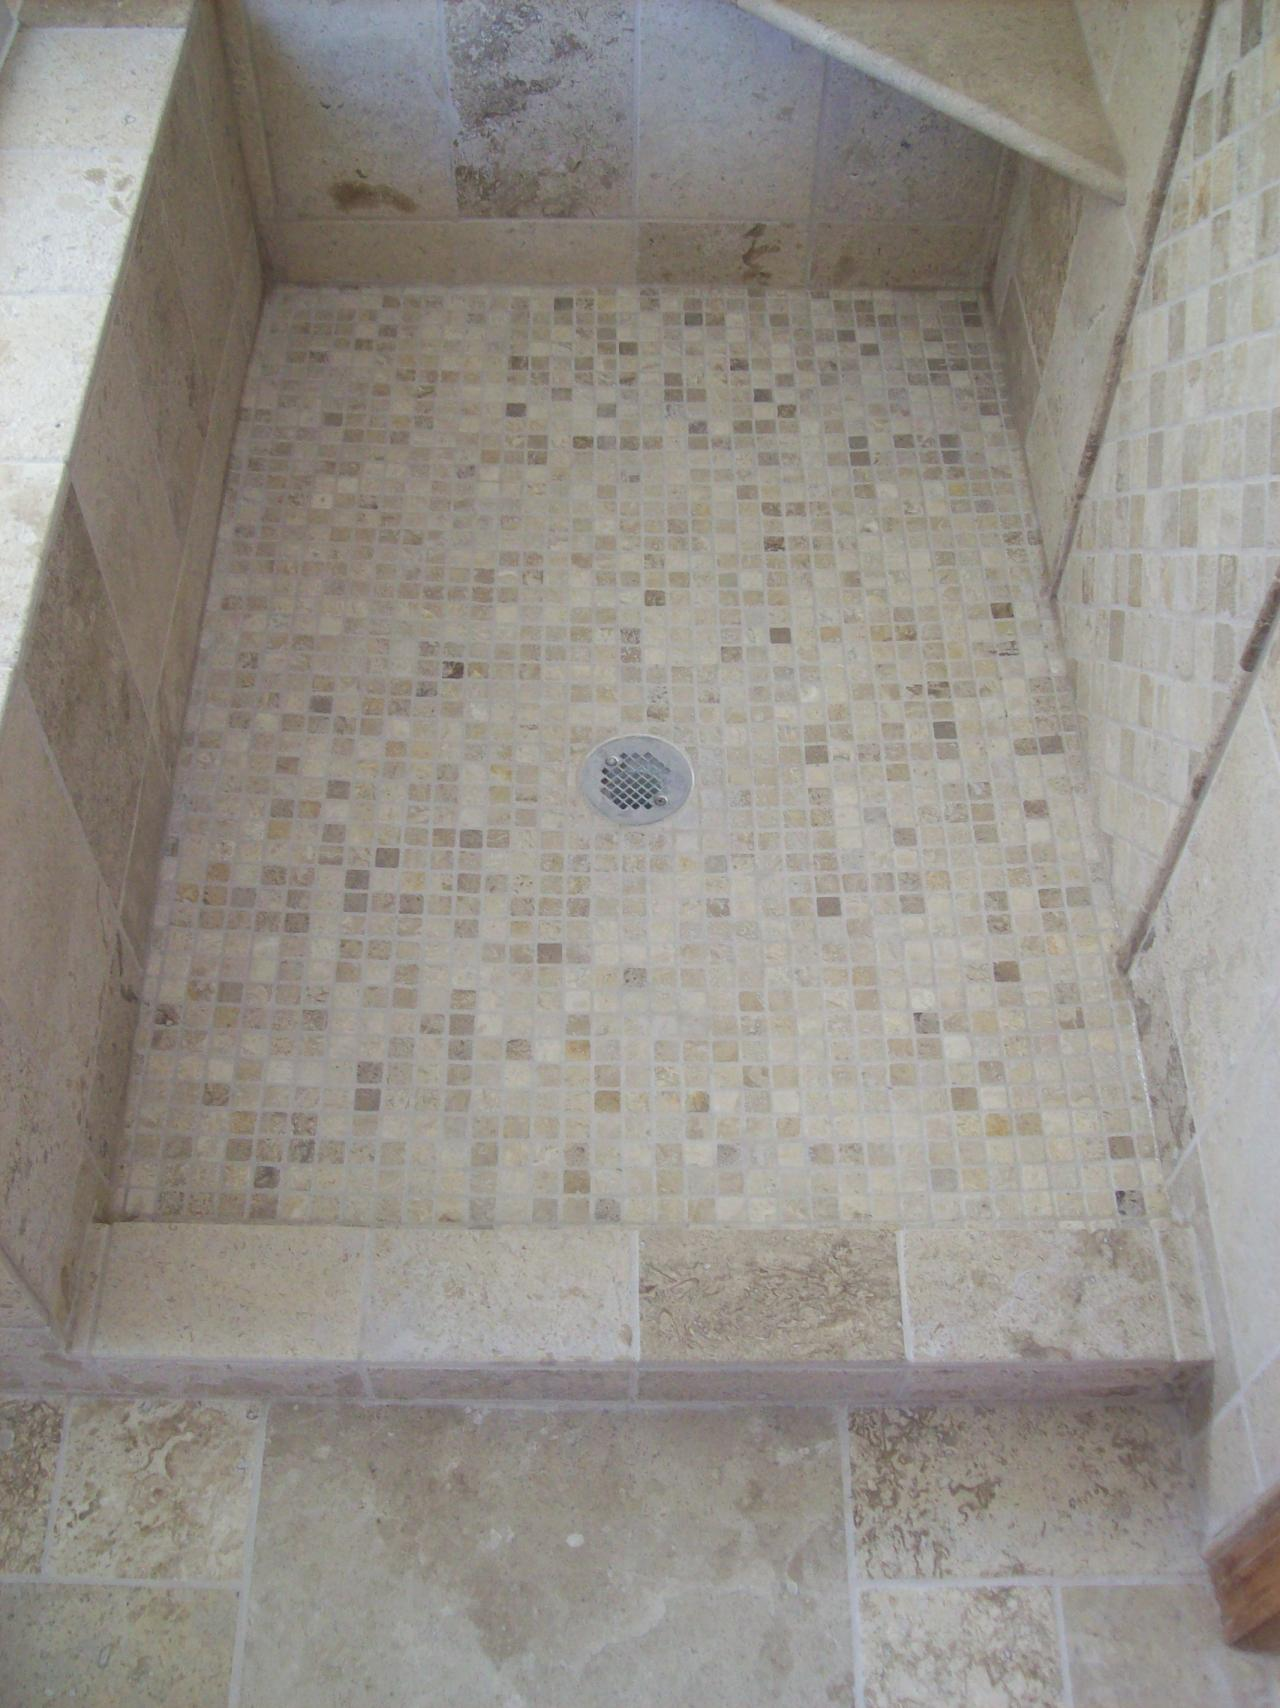 interior-bathroom-mosaic-porcelain-tile-flooring-for-shower-box-bathroom-floor-tile-ideas-for-small-bathrooms_LZDIRd3d3LmNob2xhb25saW5lLmNvbS93cC1jb250ZW50L3VwbG9hZHMvMjAxNS8wOQ==